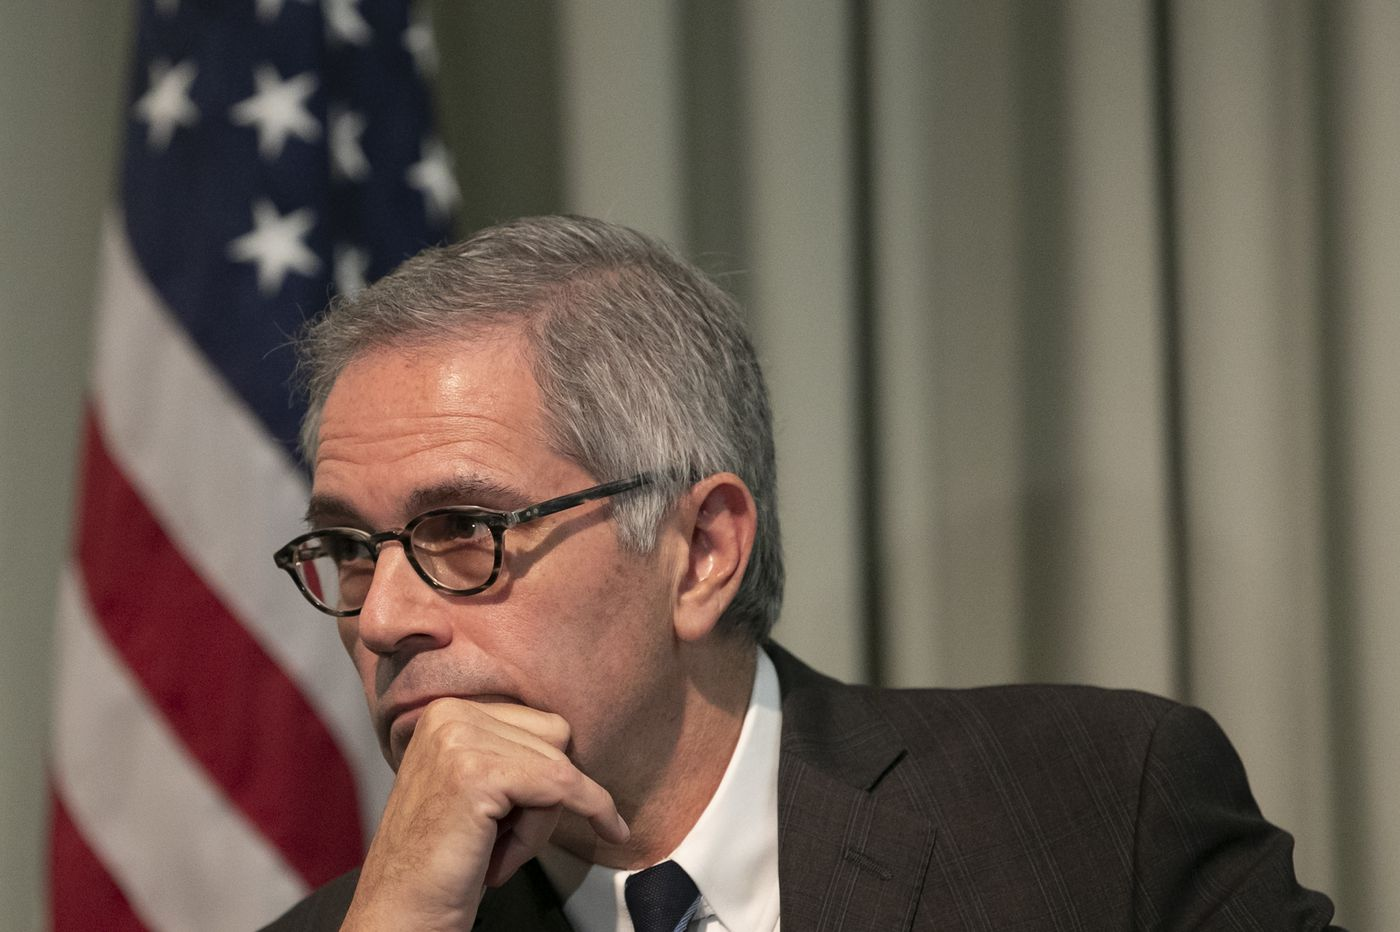 Philly DA Larry Krasner plans 'truth, justice, and reconciliation commission' to review harm caused by justice system